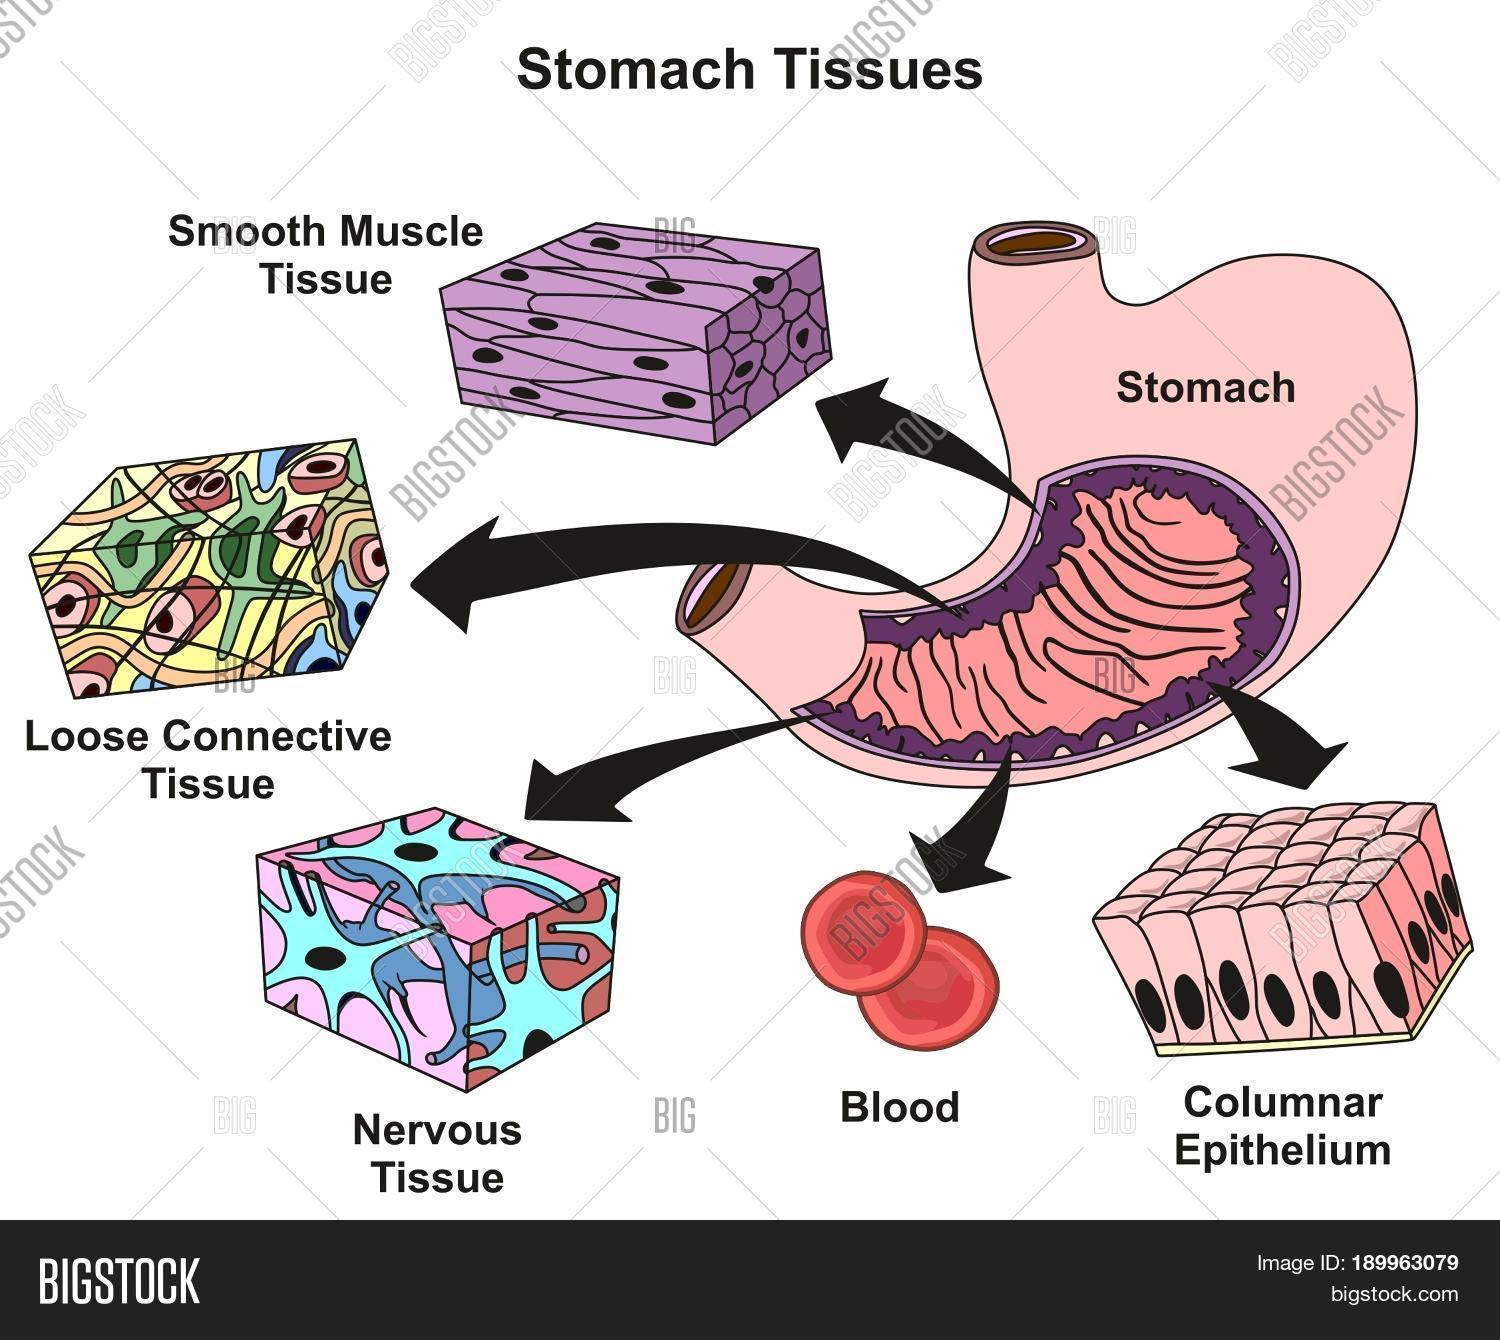 Stomach tissues types image photo free trial bigstock stomach tissues types and structure infographic diagram including smooth muscle loose connective nervous blood columnar ccuart Image collections